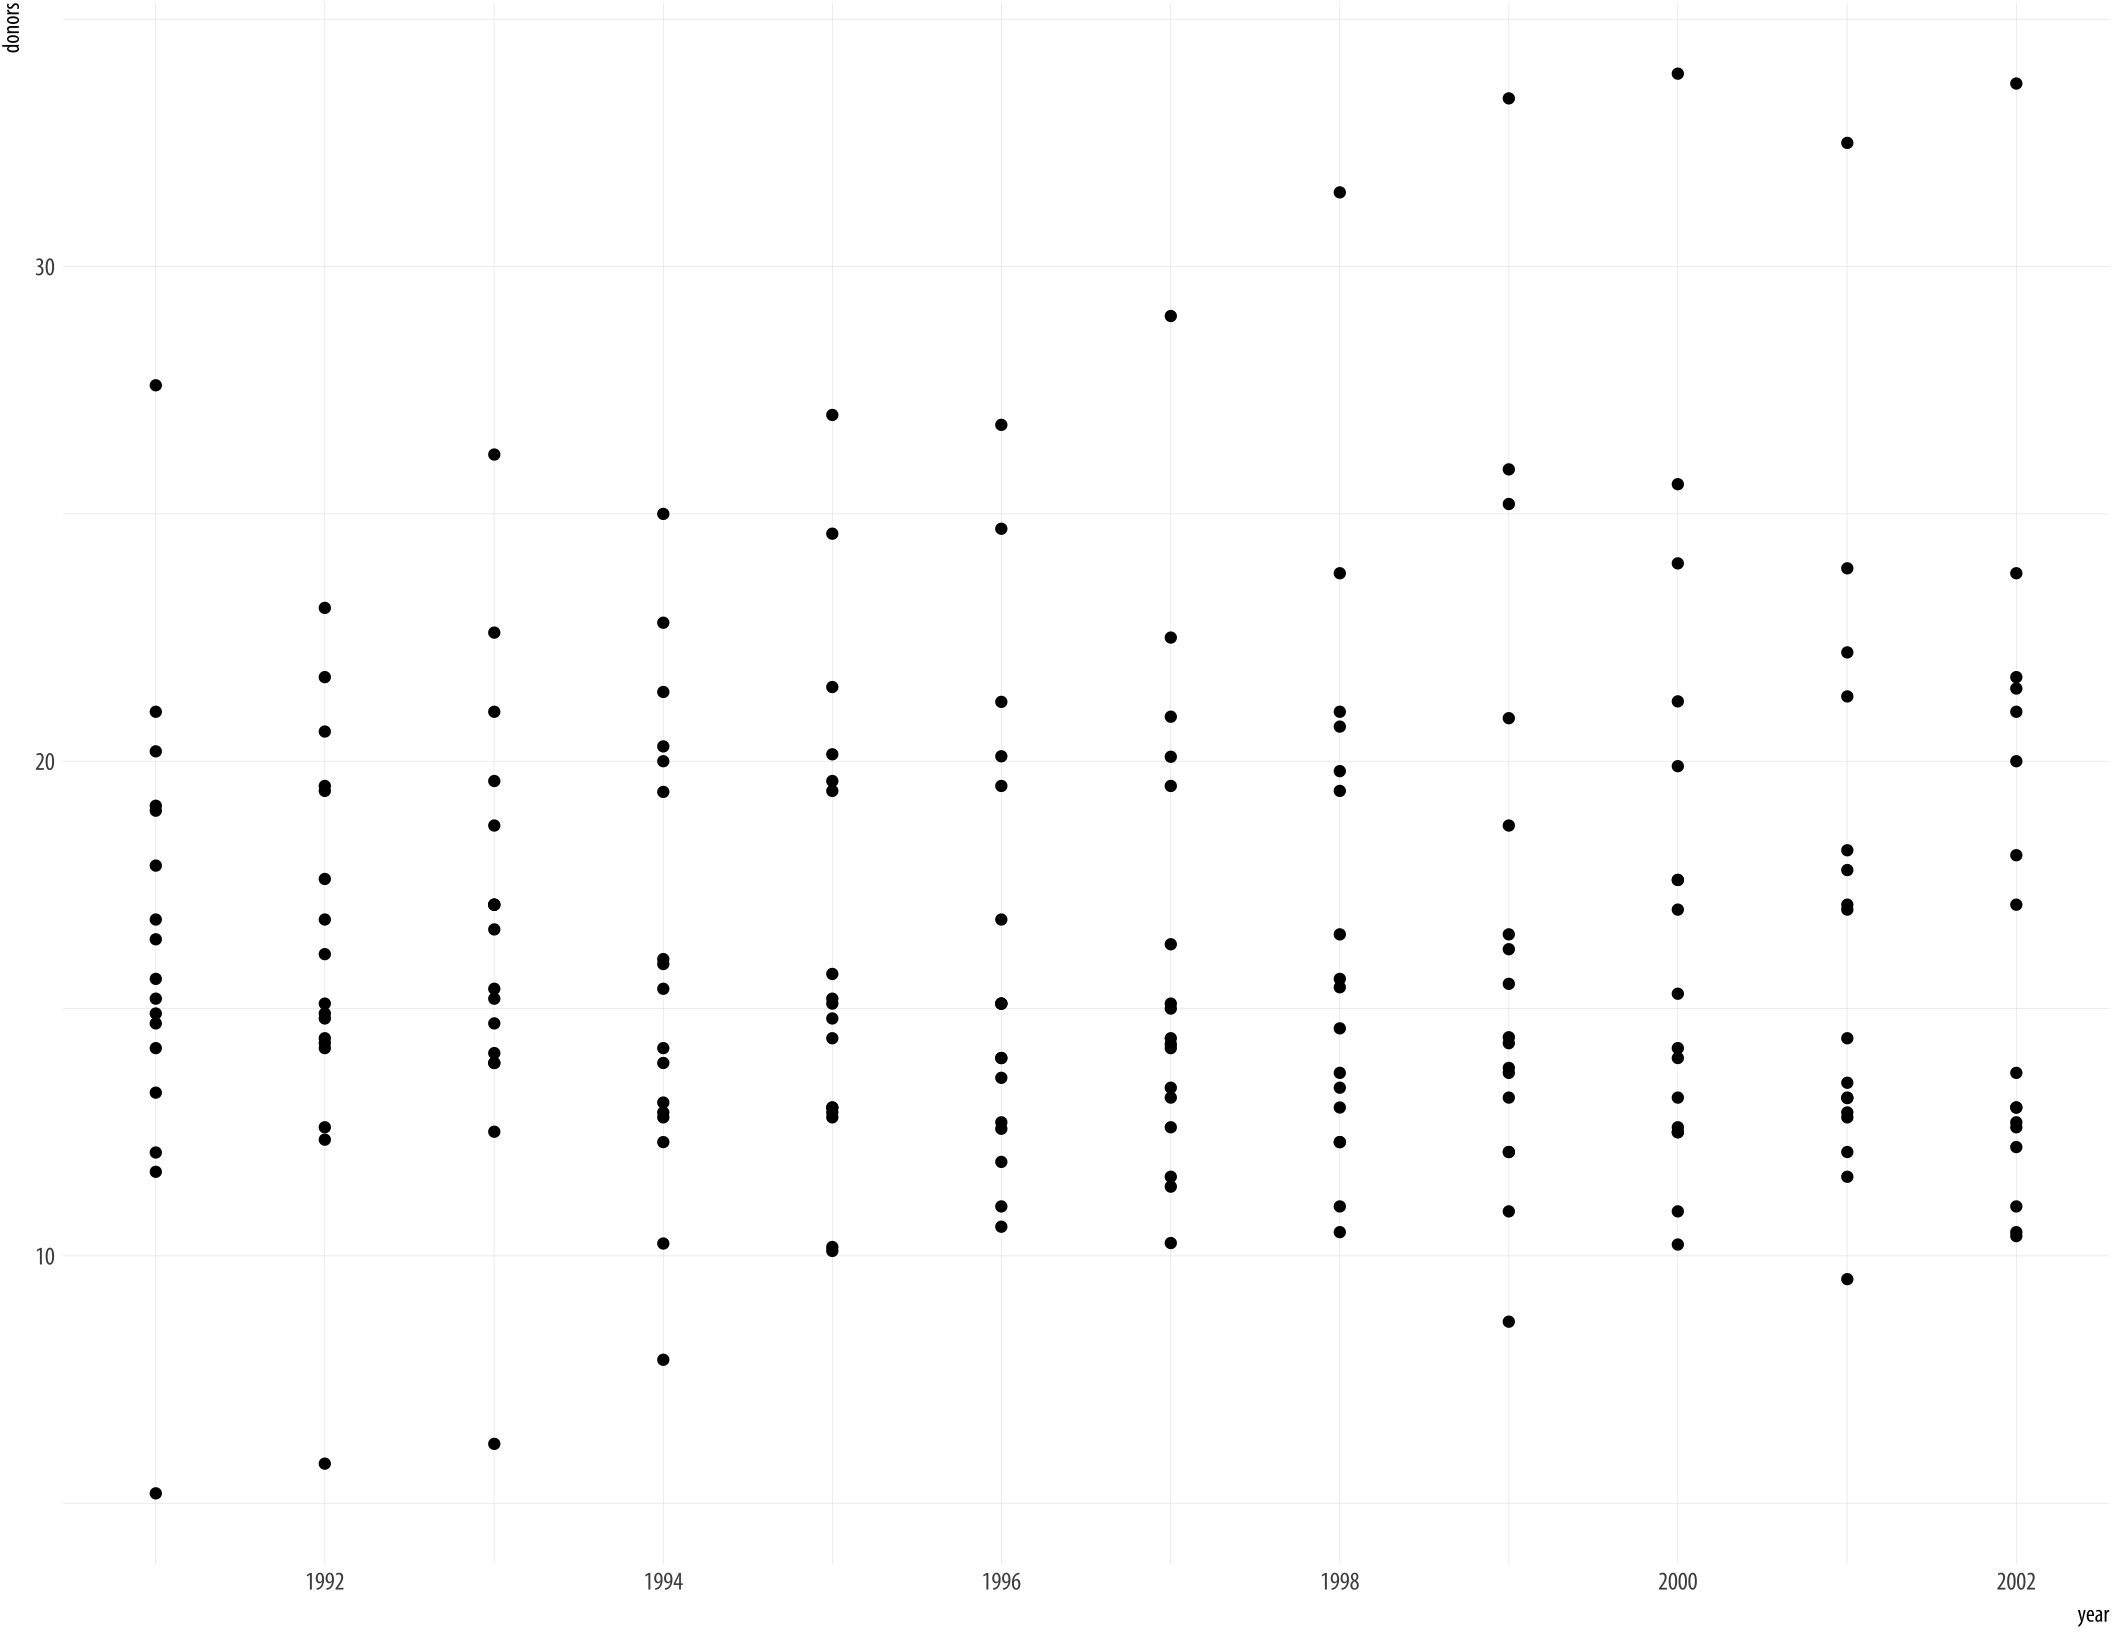 Boxplots reordered by mean donation rate.